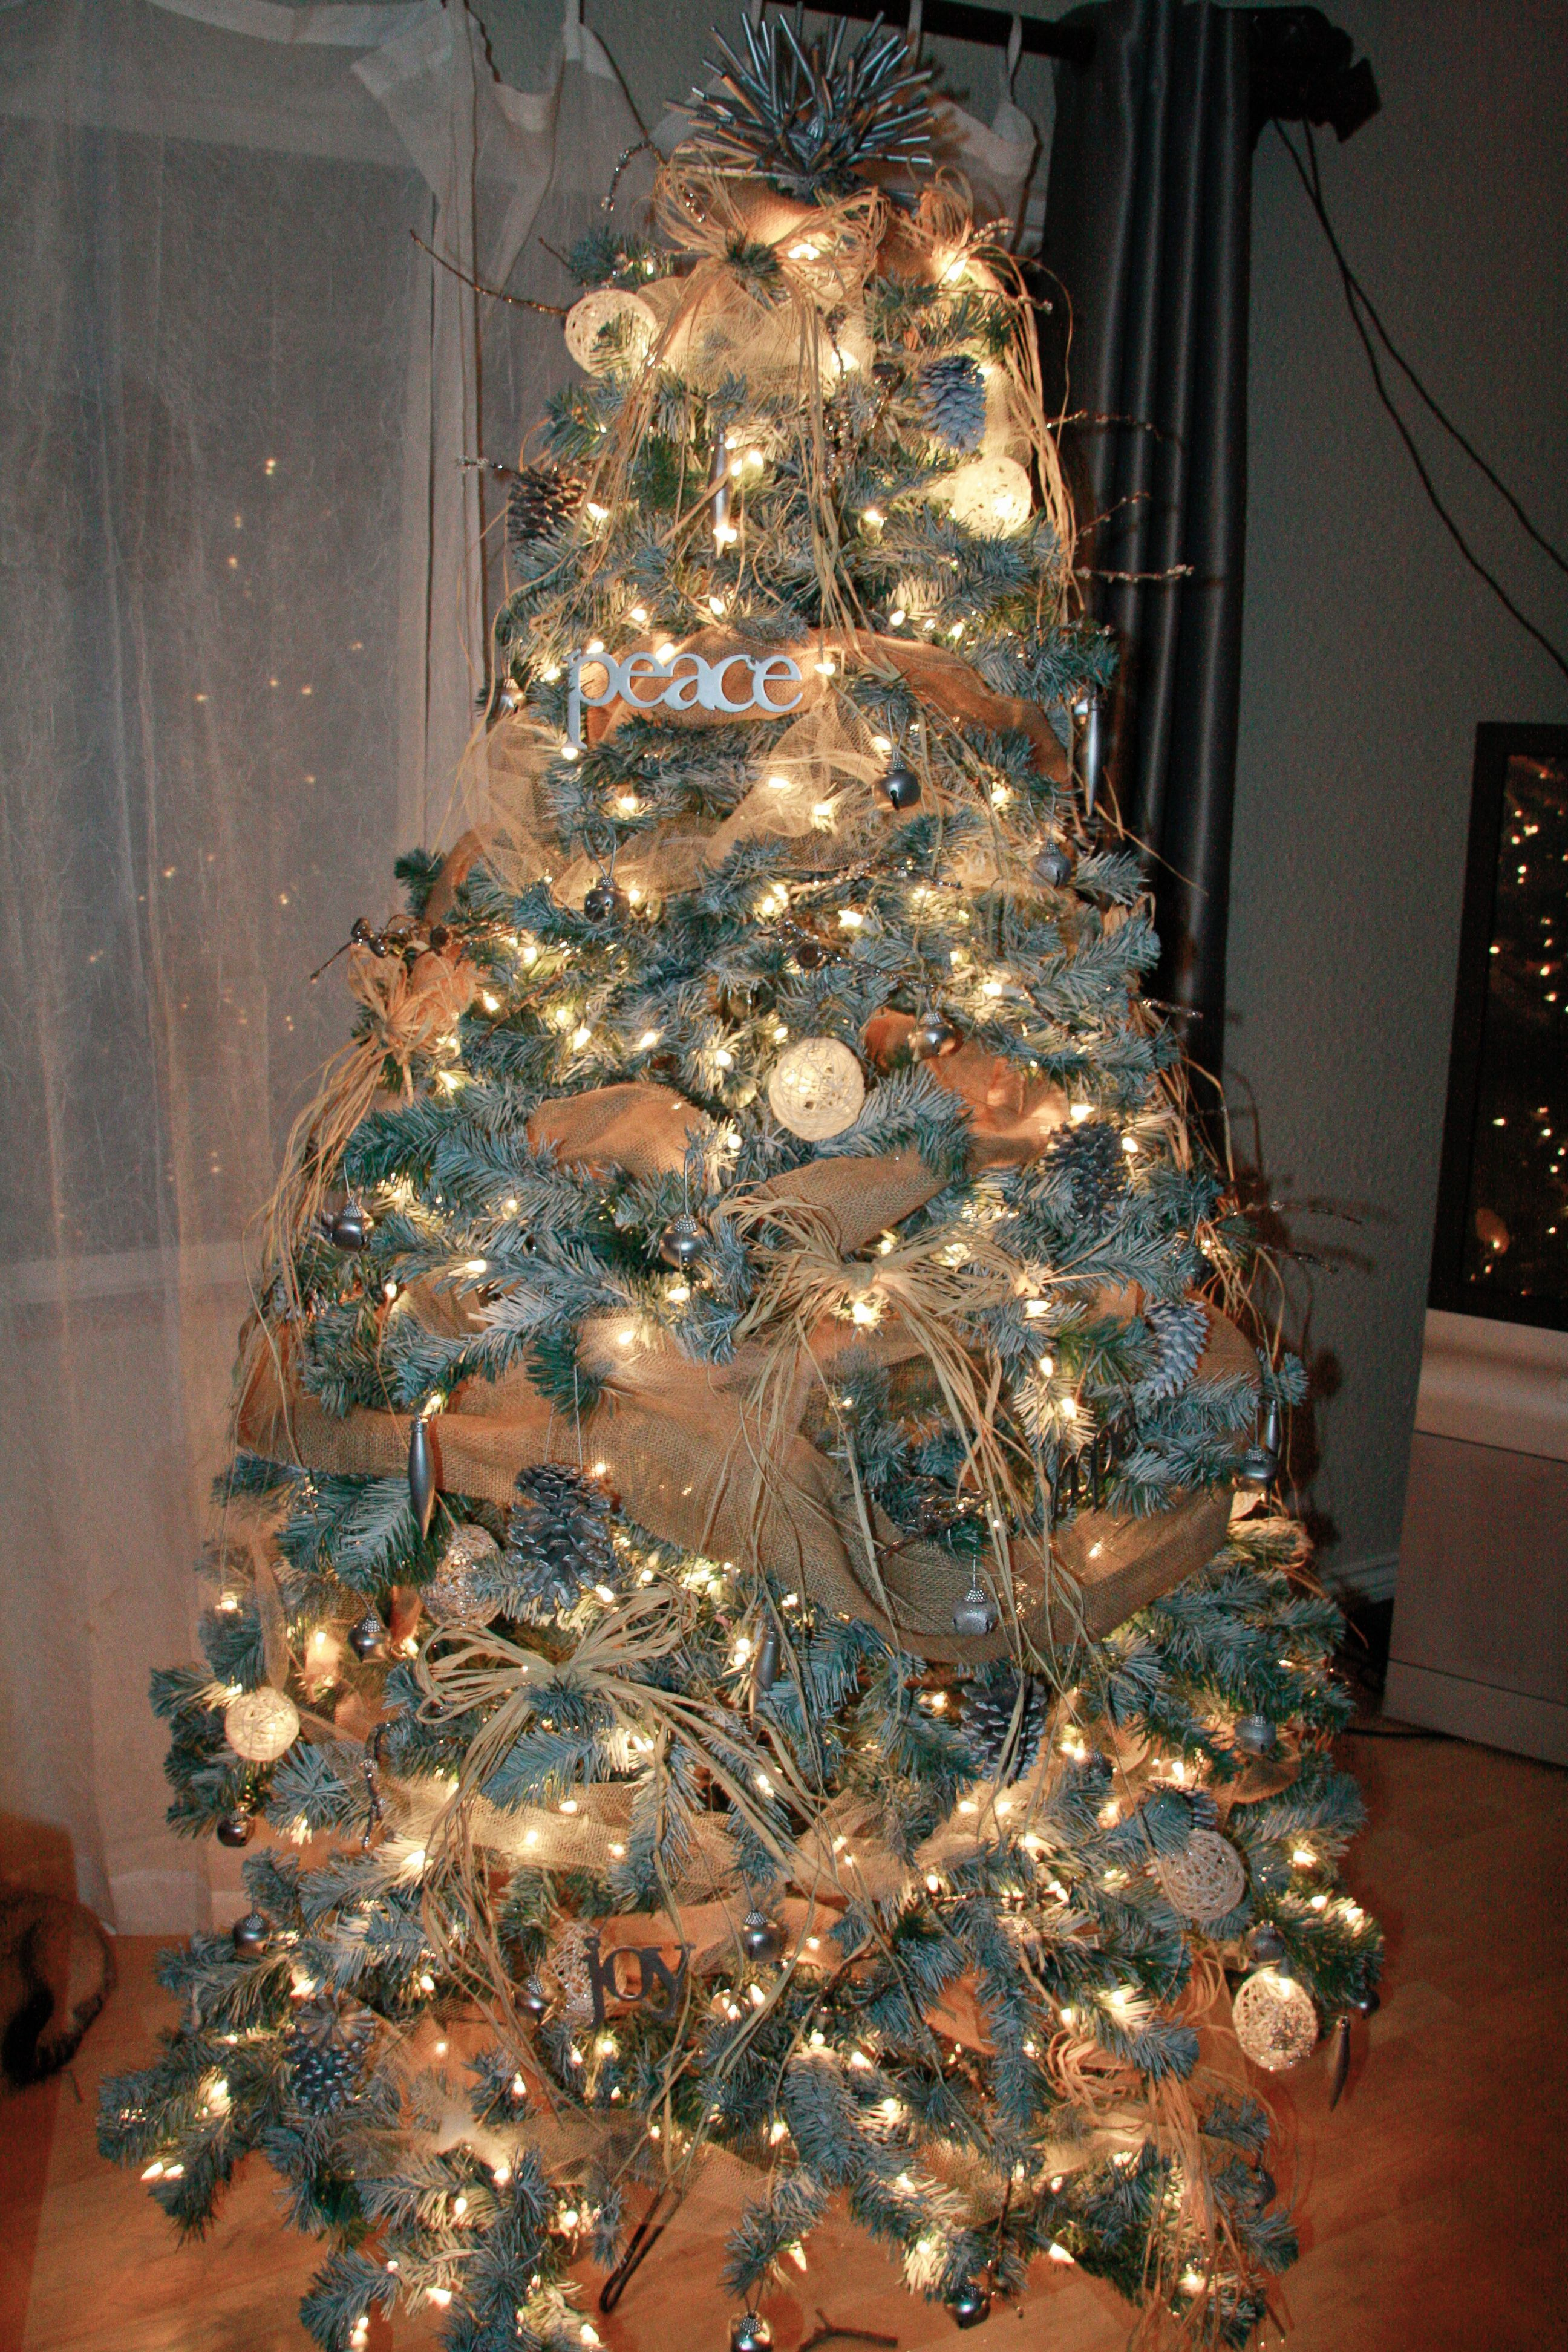 Neutral Christmas Spray Painted Flocked Tree Burlap Tulle Garland Raffia Bows Silver